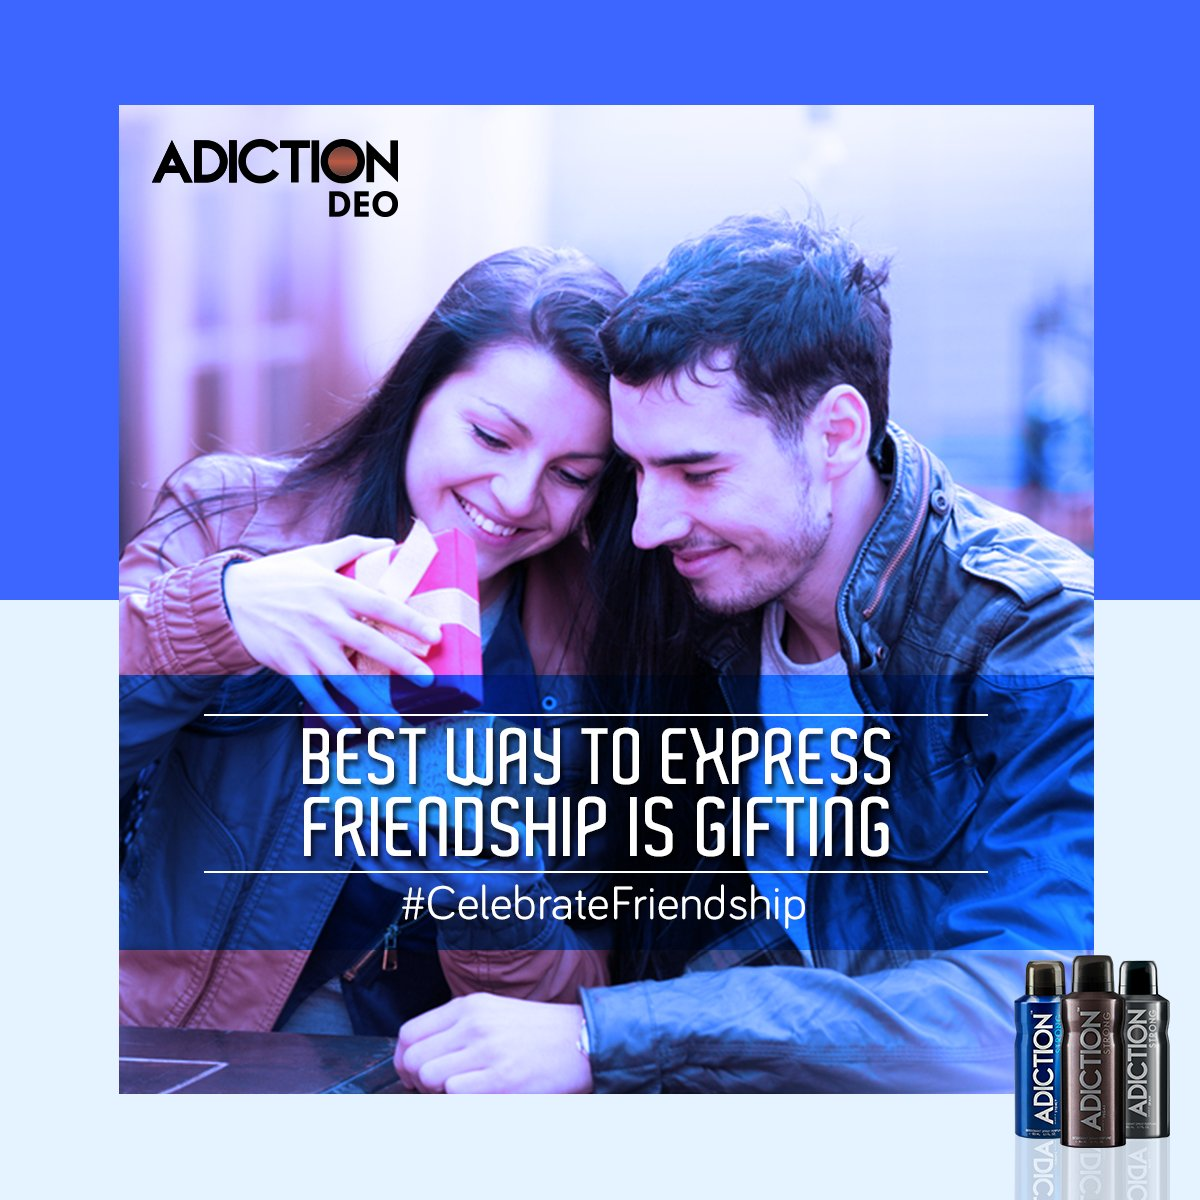 Celebrate Friendship Day with Adiction Deodorant. #CelebrateFriendhsip #Adiction #SmellStrong https://t.co/NOios4R4IA